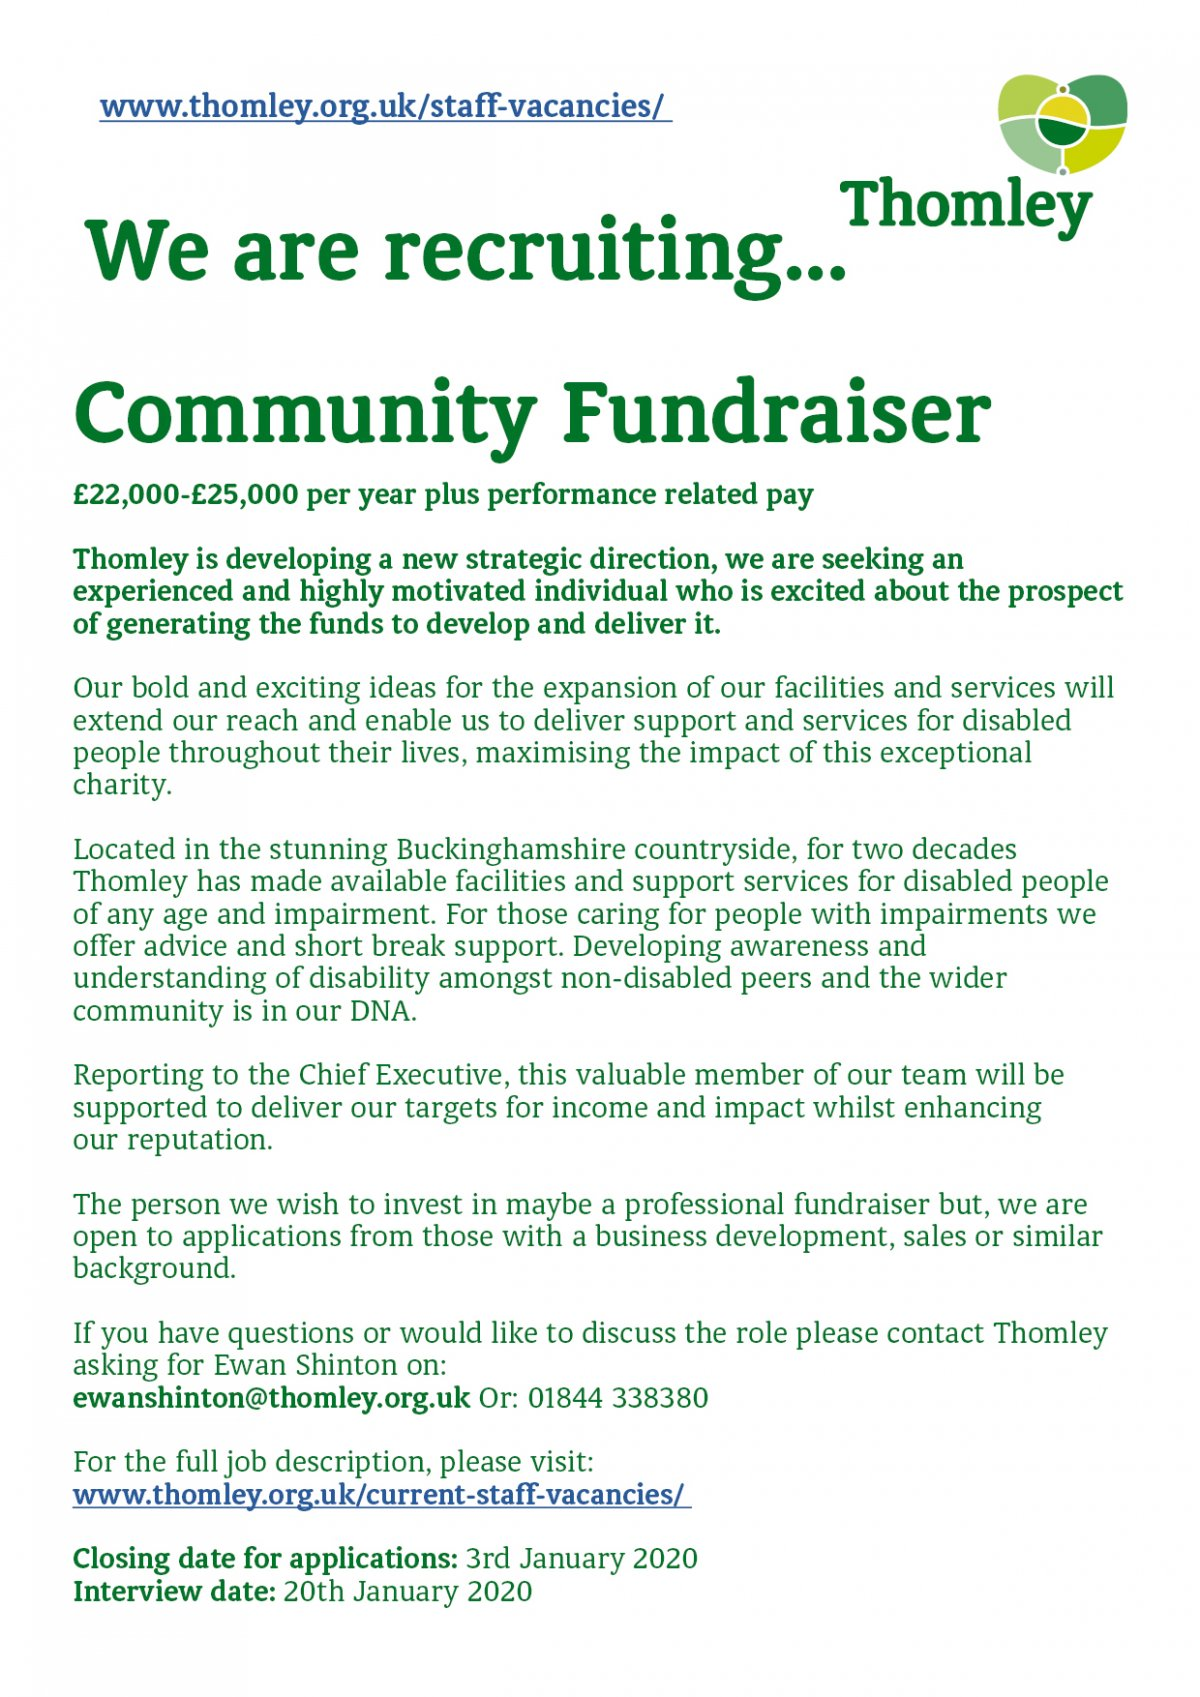 We Are Recruiting For A Community Fundraiser…